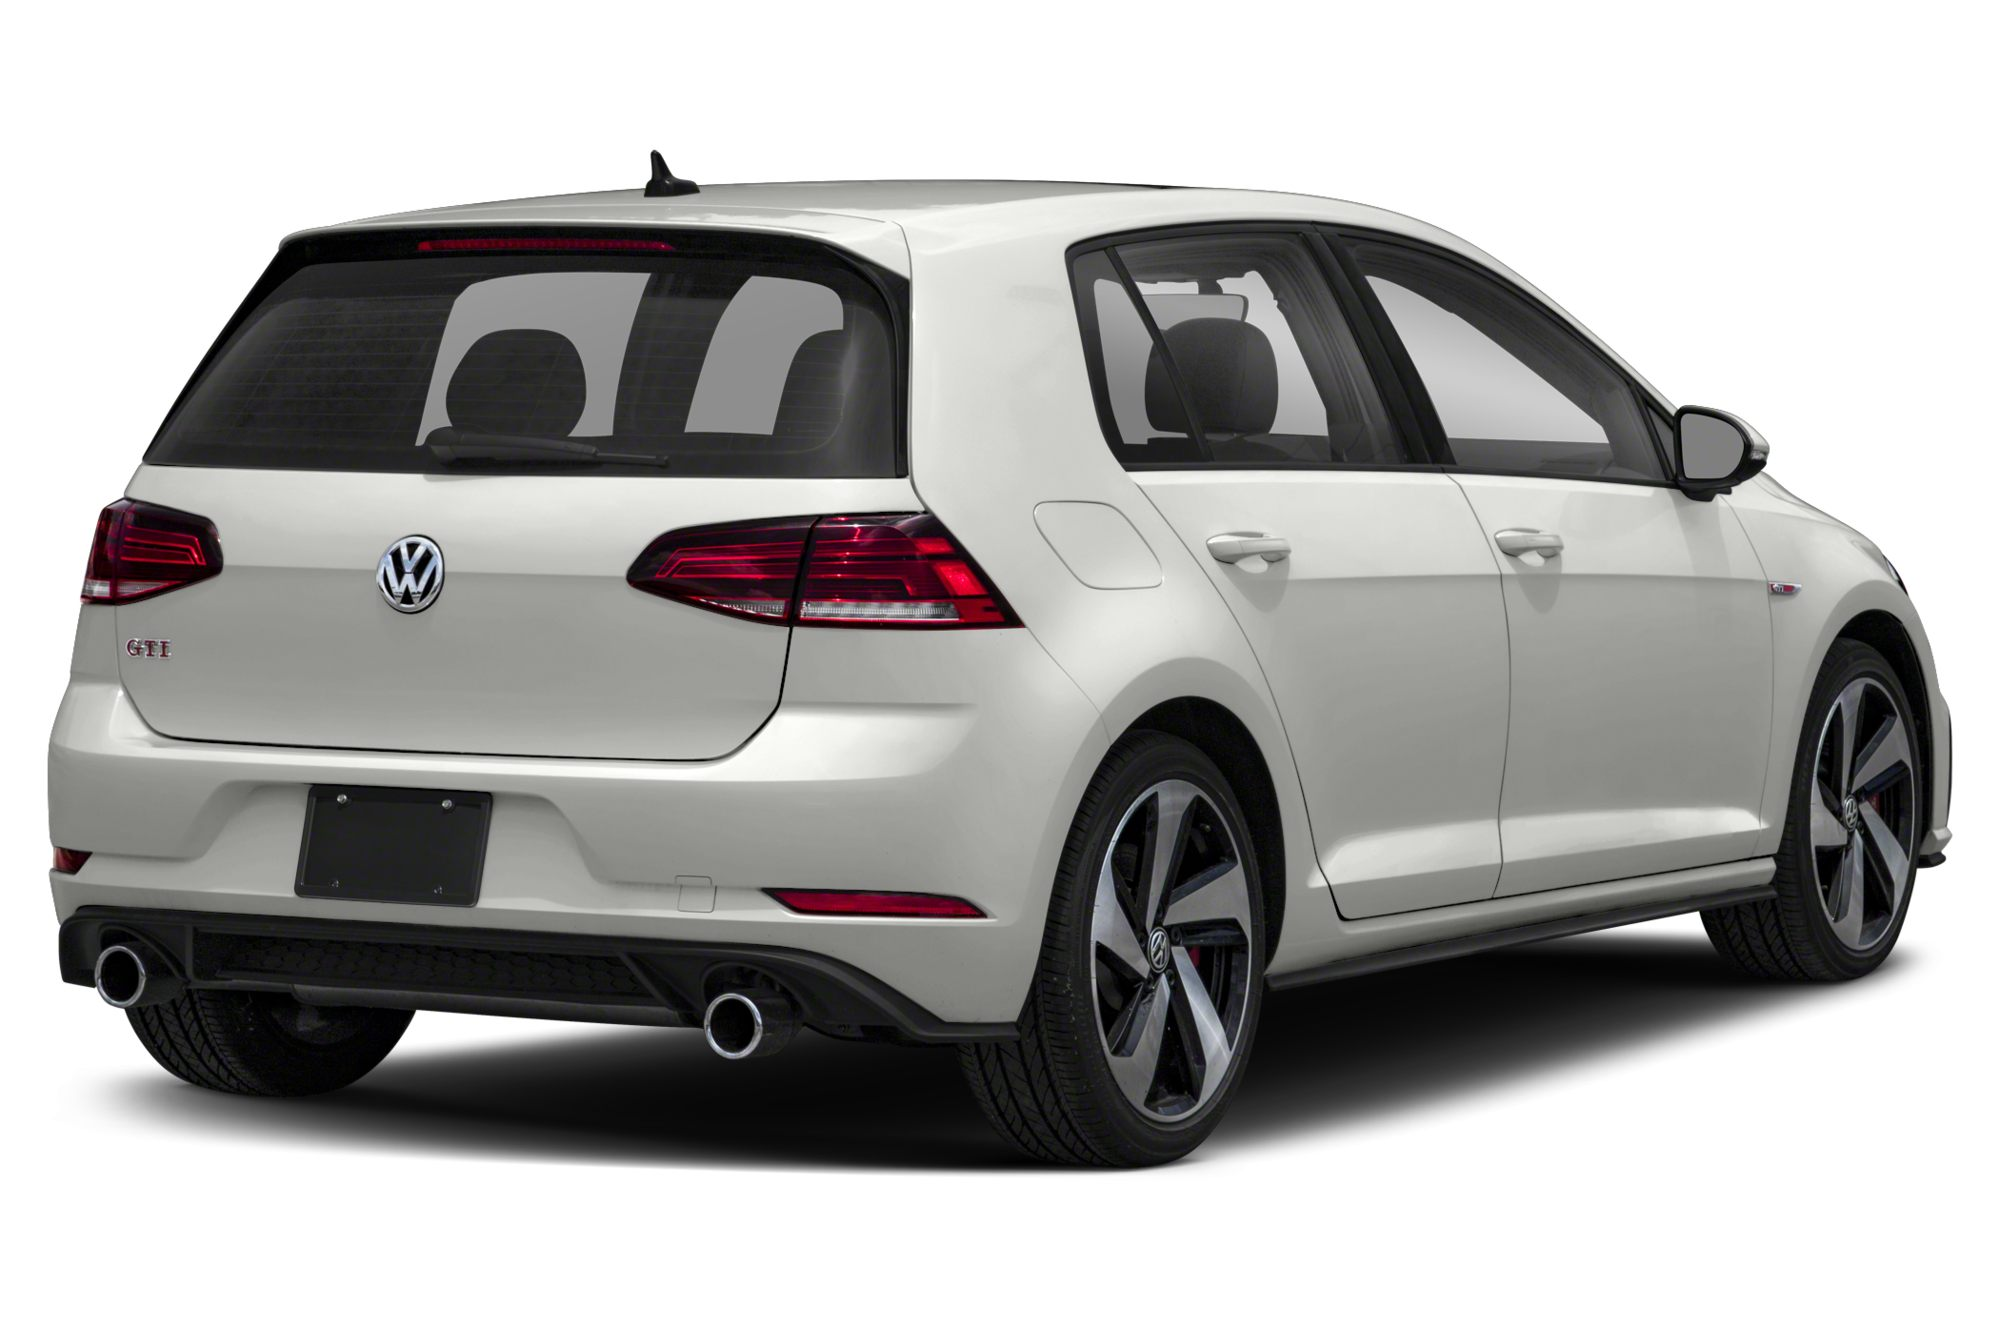 VW Golf models may be limited for local market in 2021